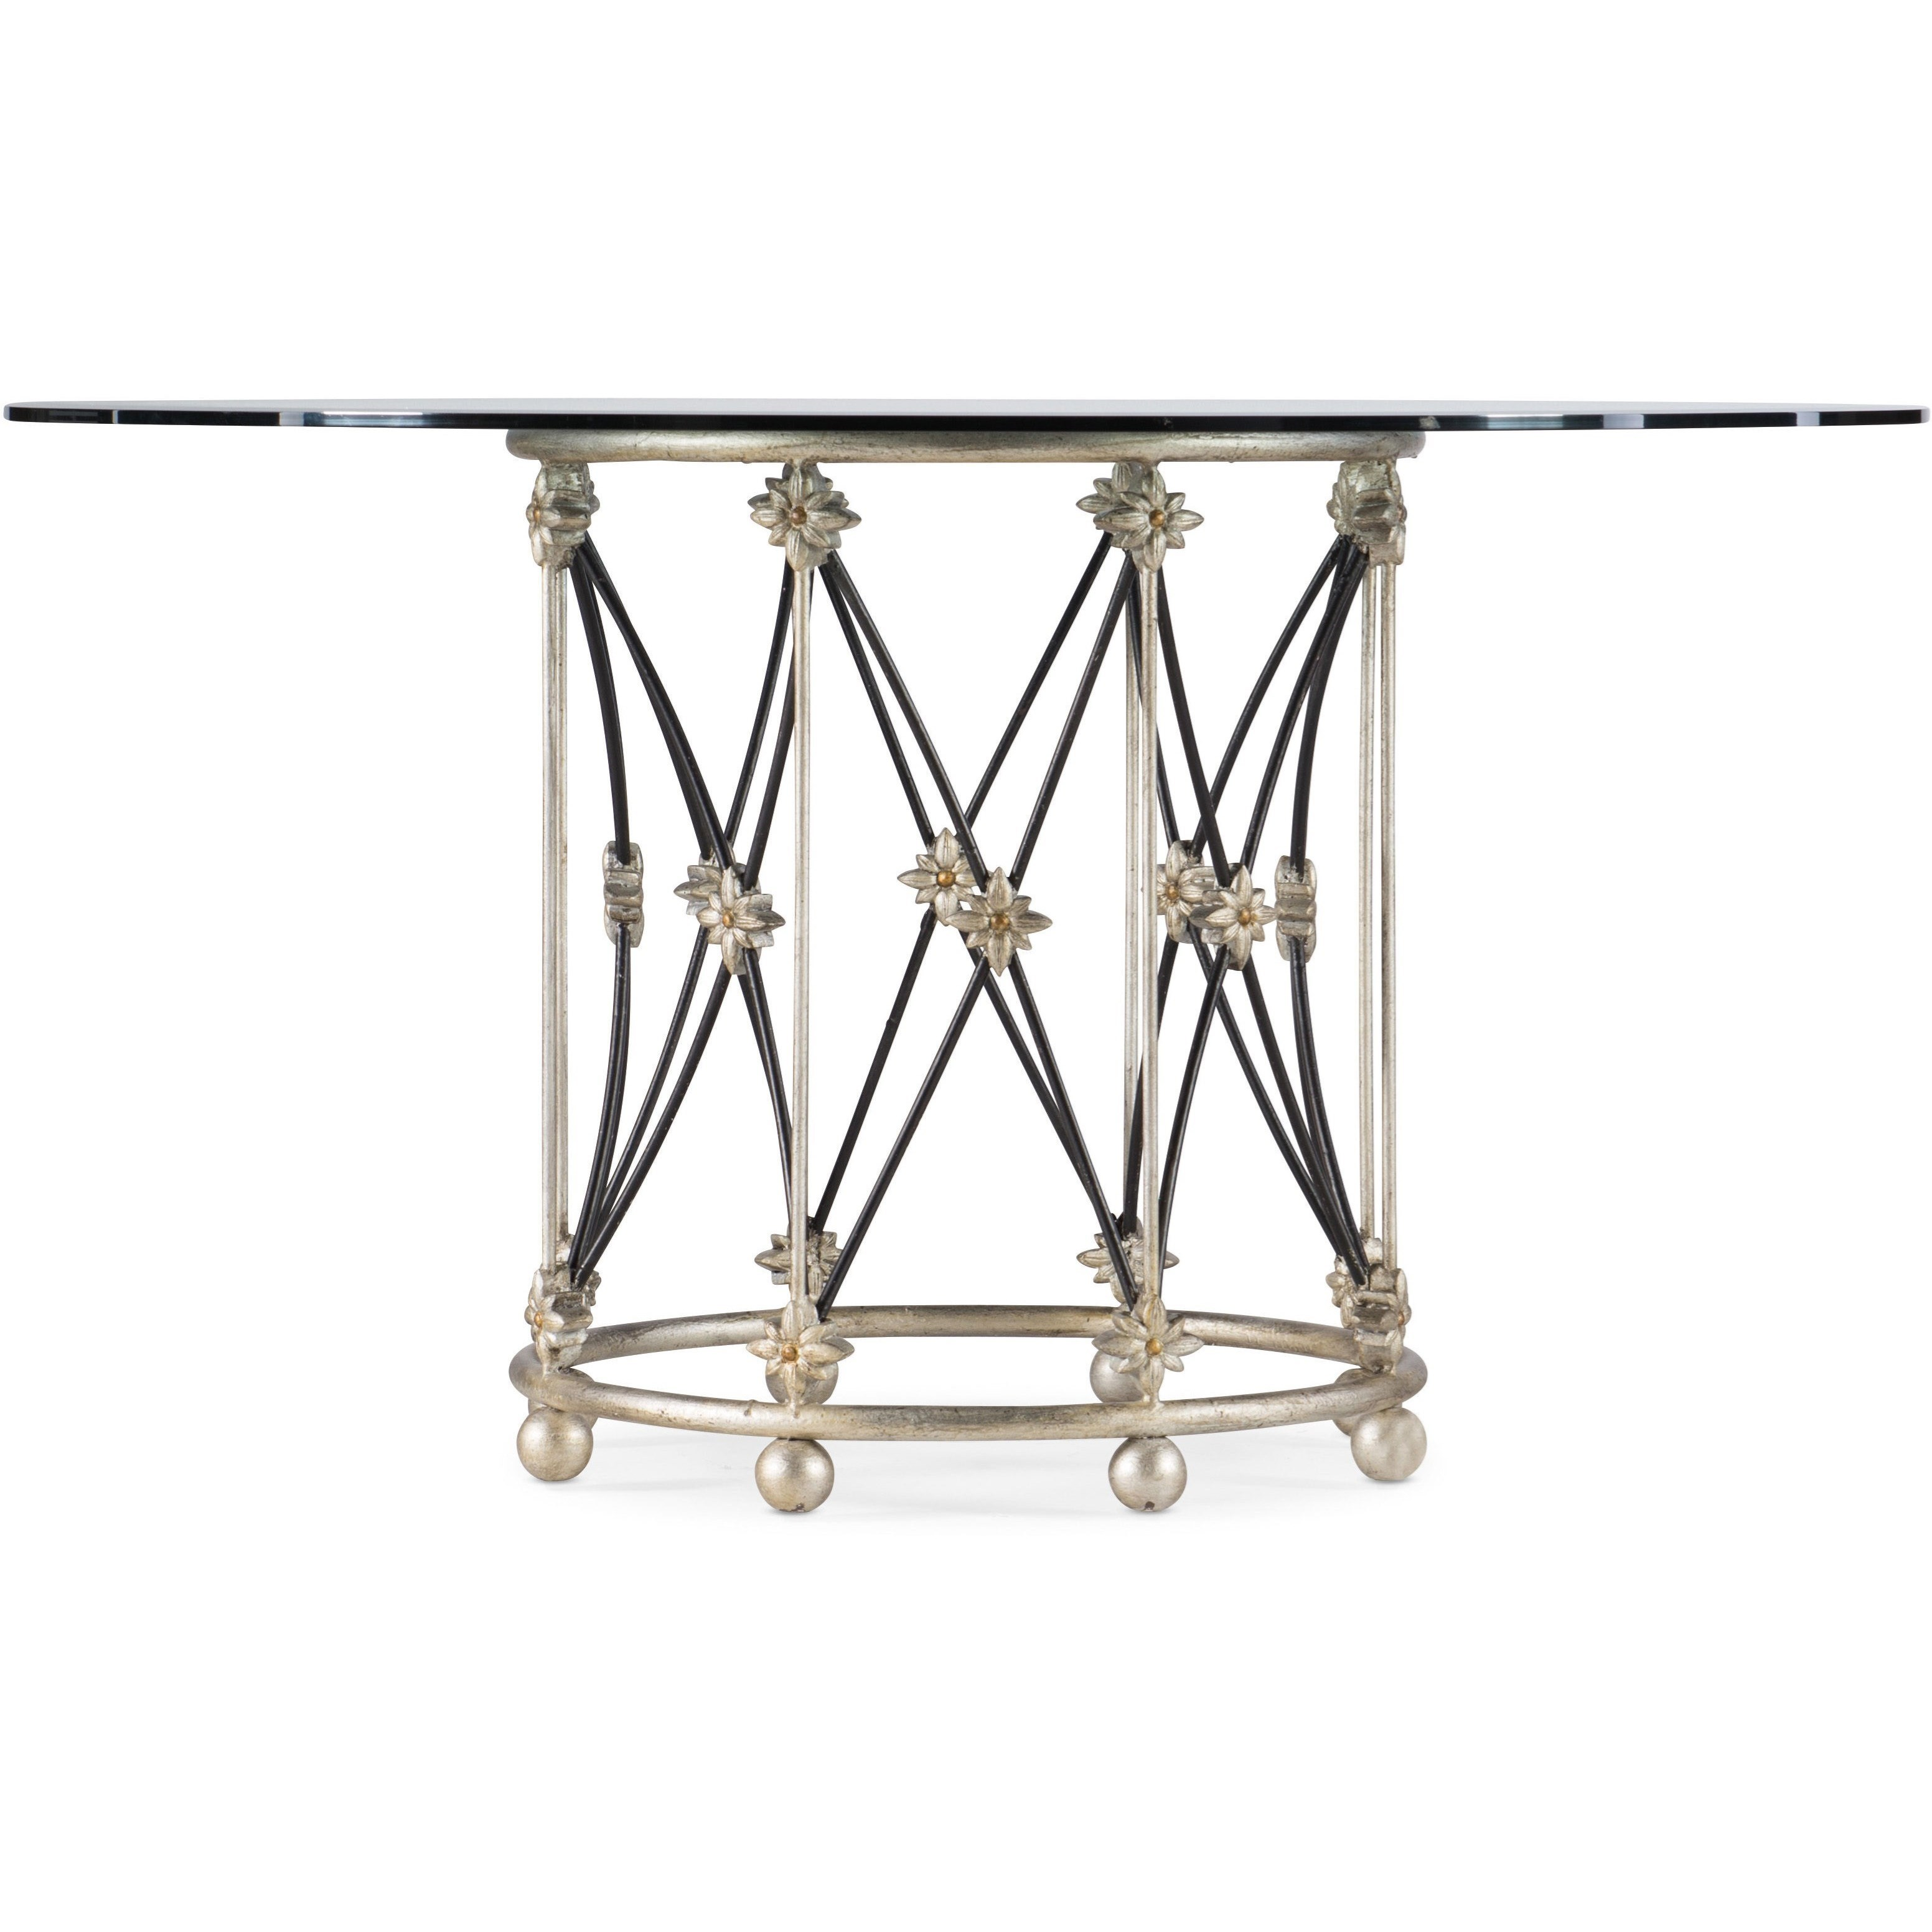 Sanctuary Pirouette Dining Table Base by Hooker Furniture at Baer's Furniture